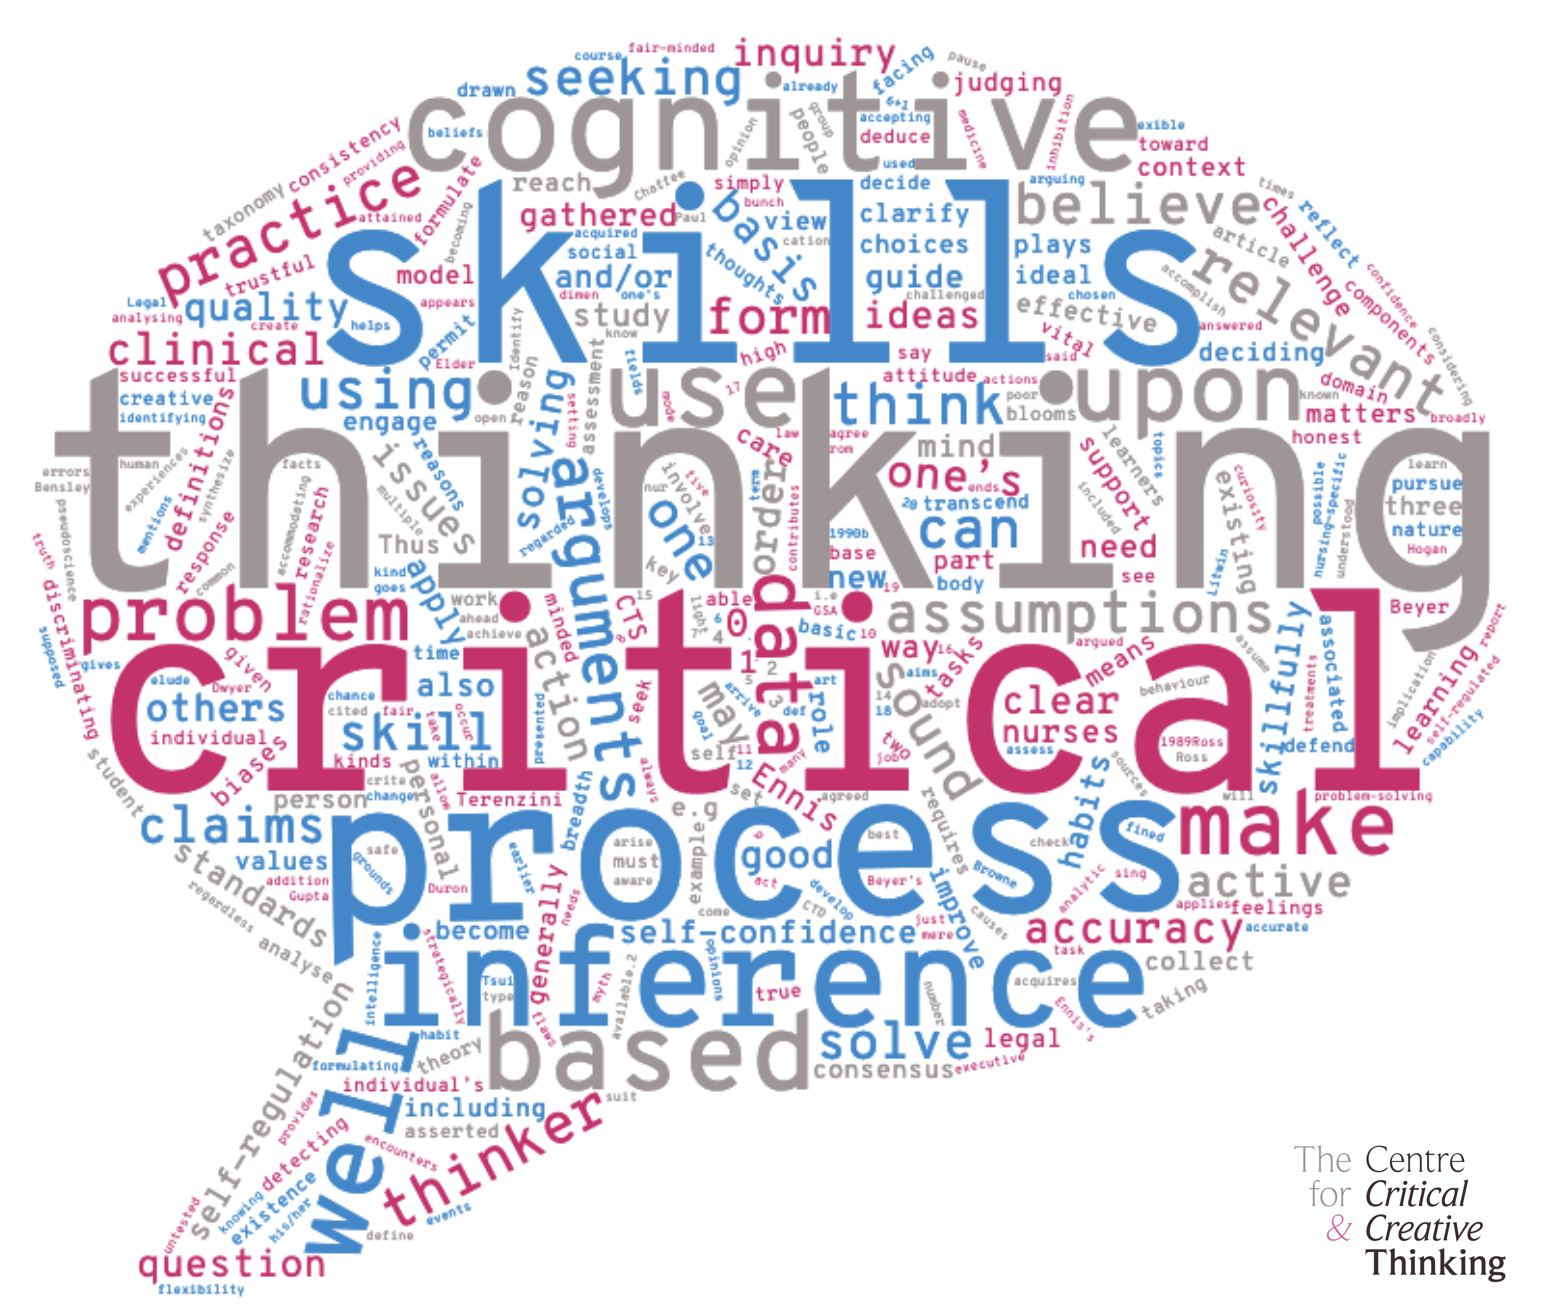 Word cloud of critical thinking definitions